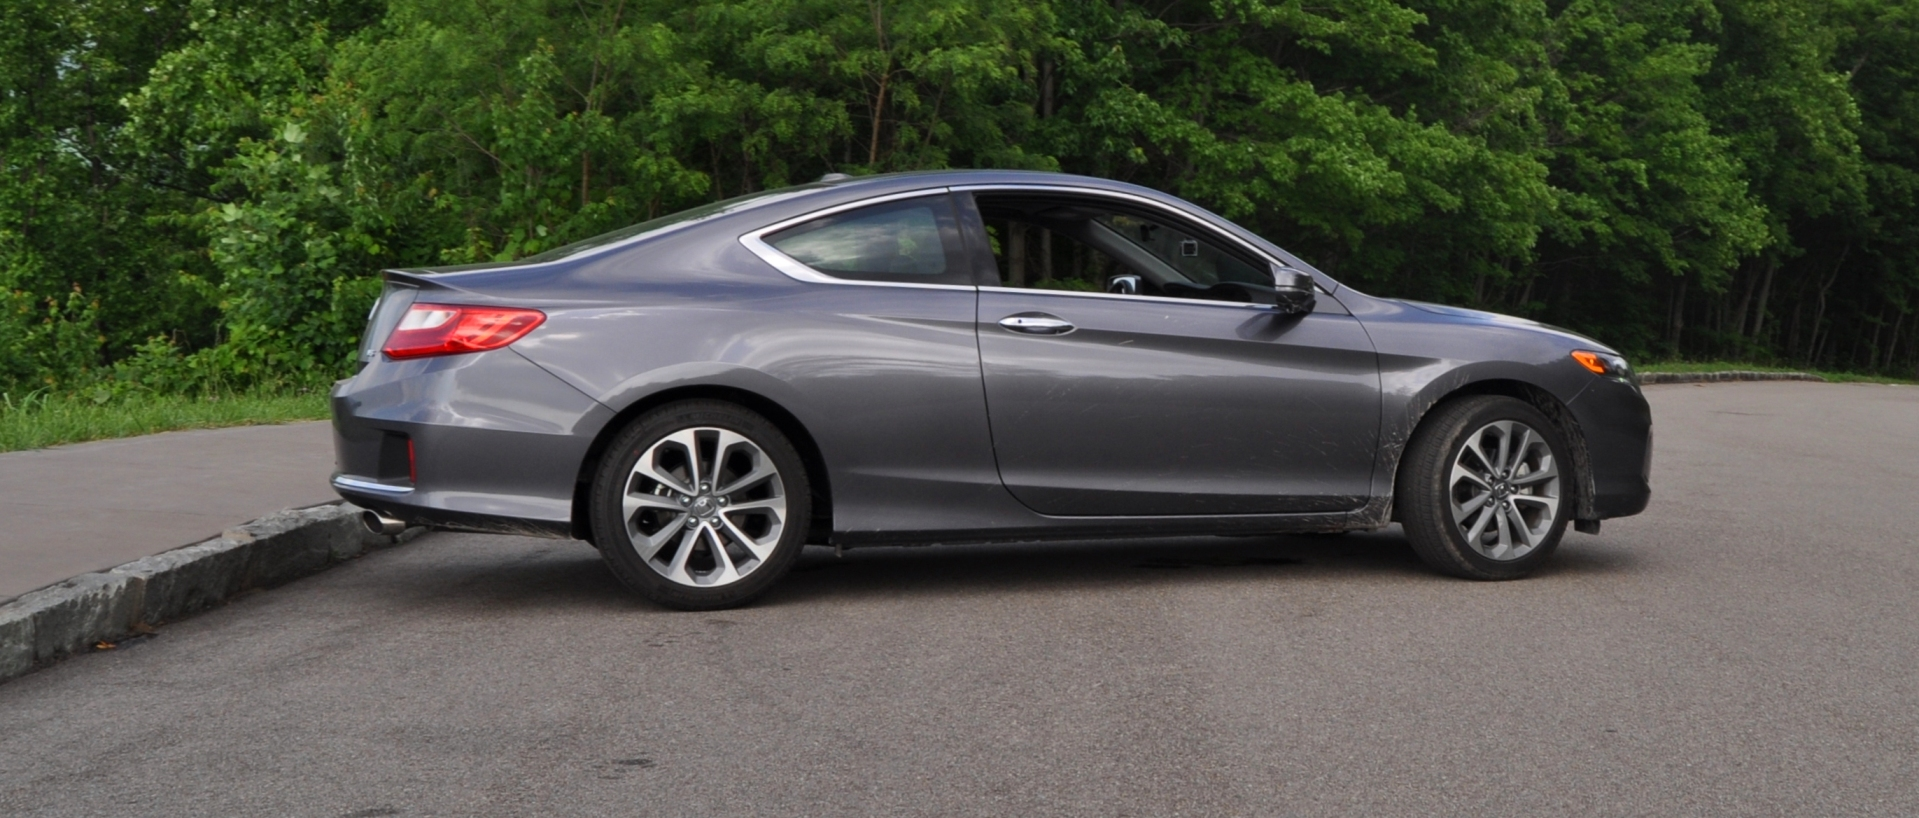 travel adventures 2014 honda accord coupe v6 in the mountains of the blue ridge parkway. Black Bedroom Furniture Sets. Home Design Ideas